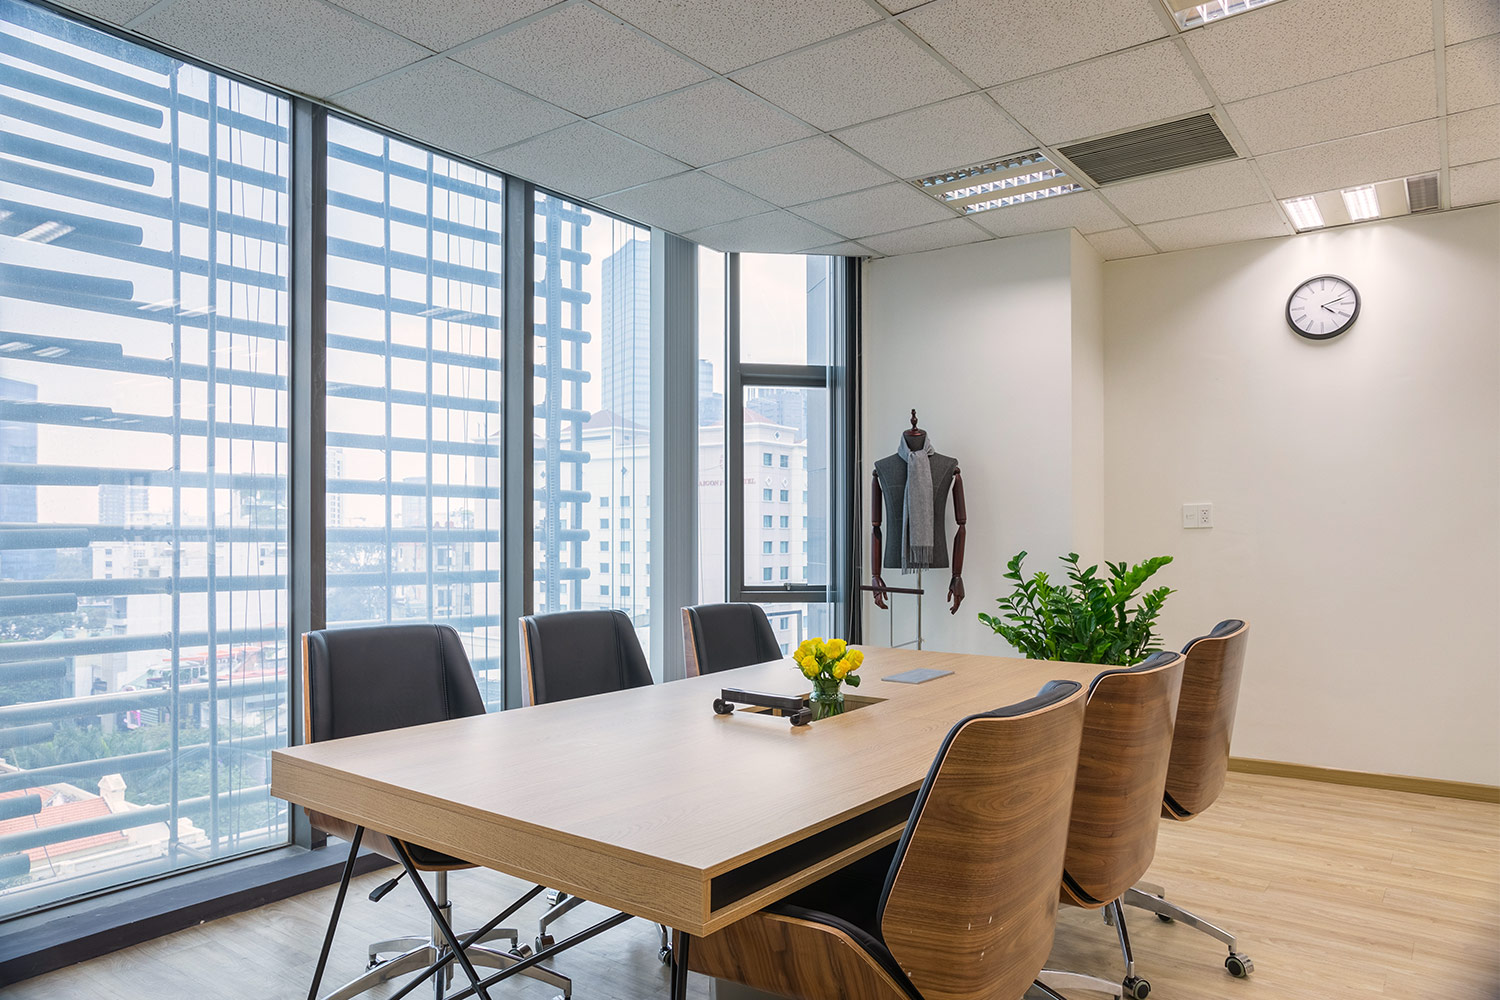 office meeting room with the view of Nguyen Hue Street, District 1 Ho Chi Minh City